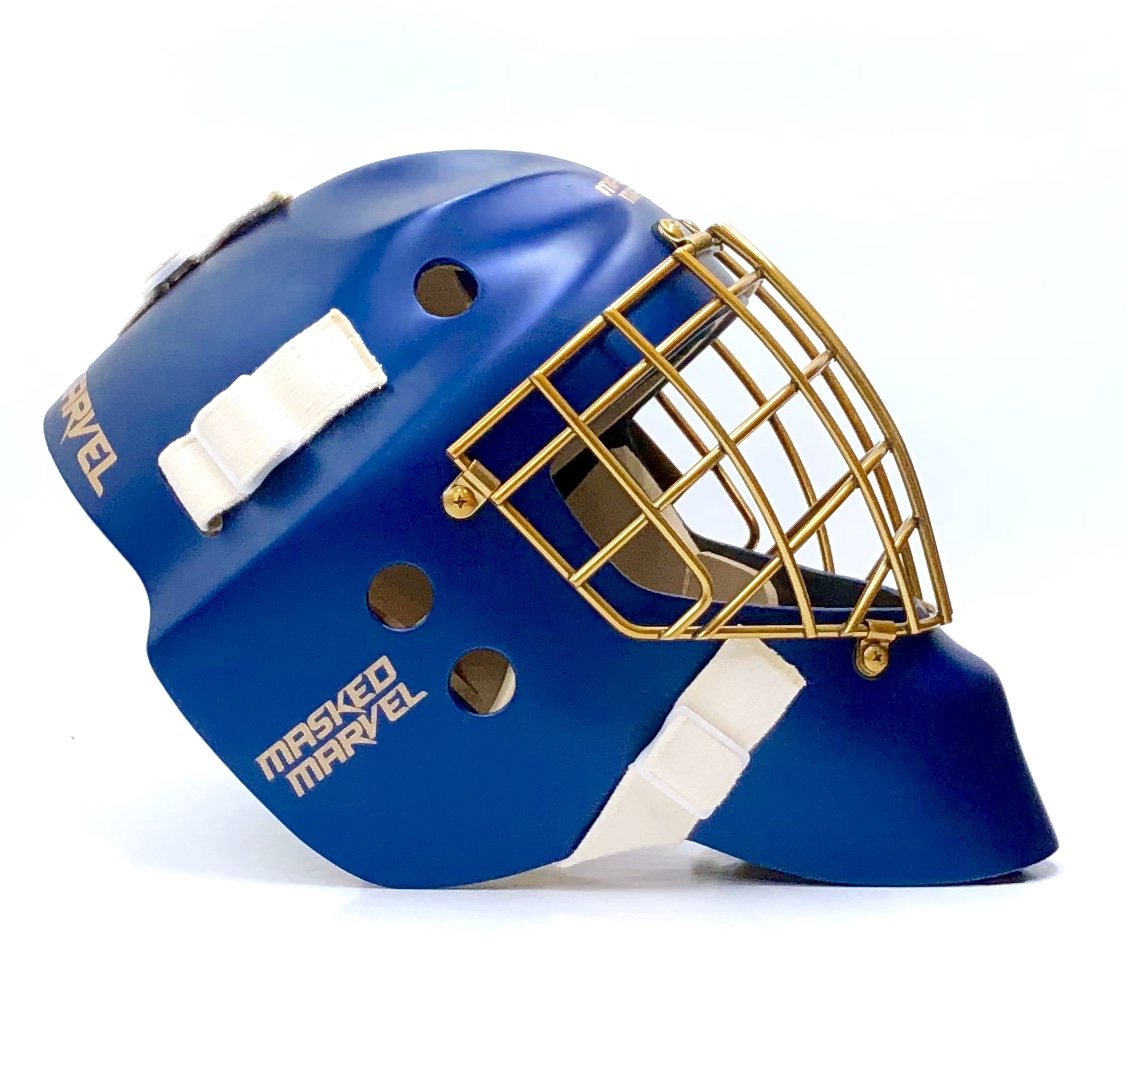 Bandits Sr. Elite Model - Matte Navy Blue